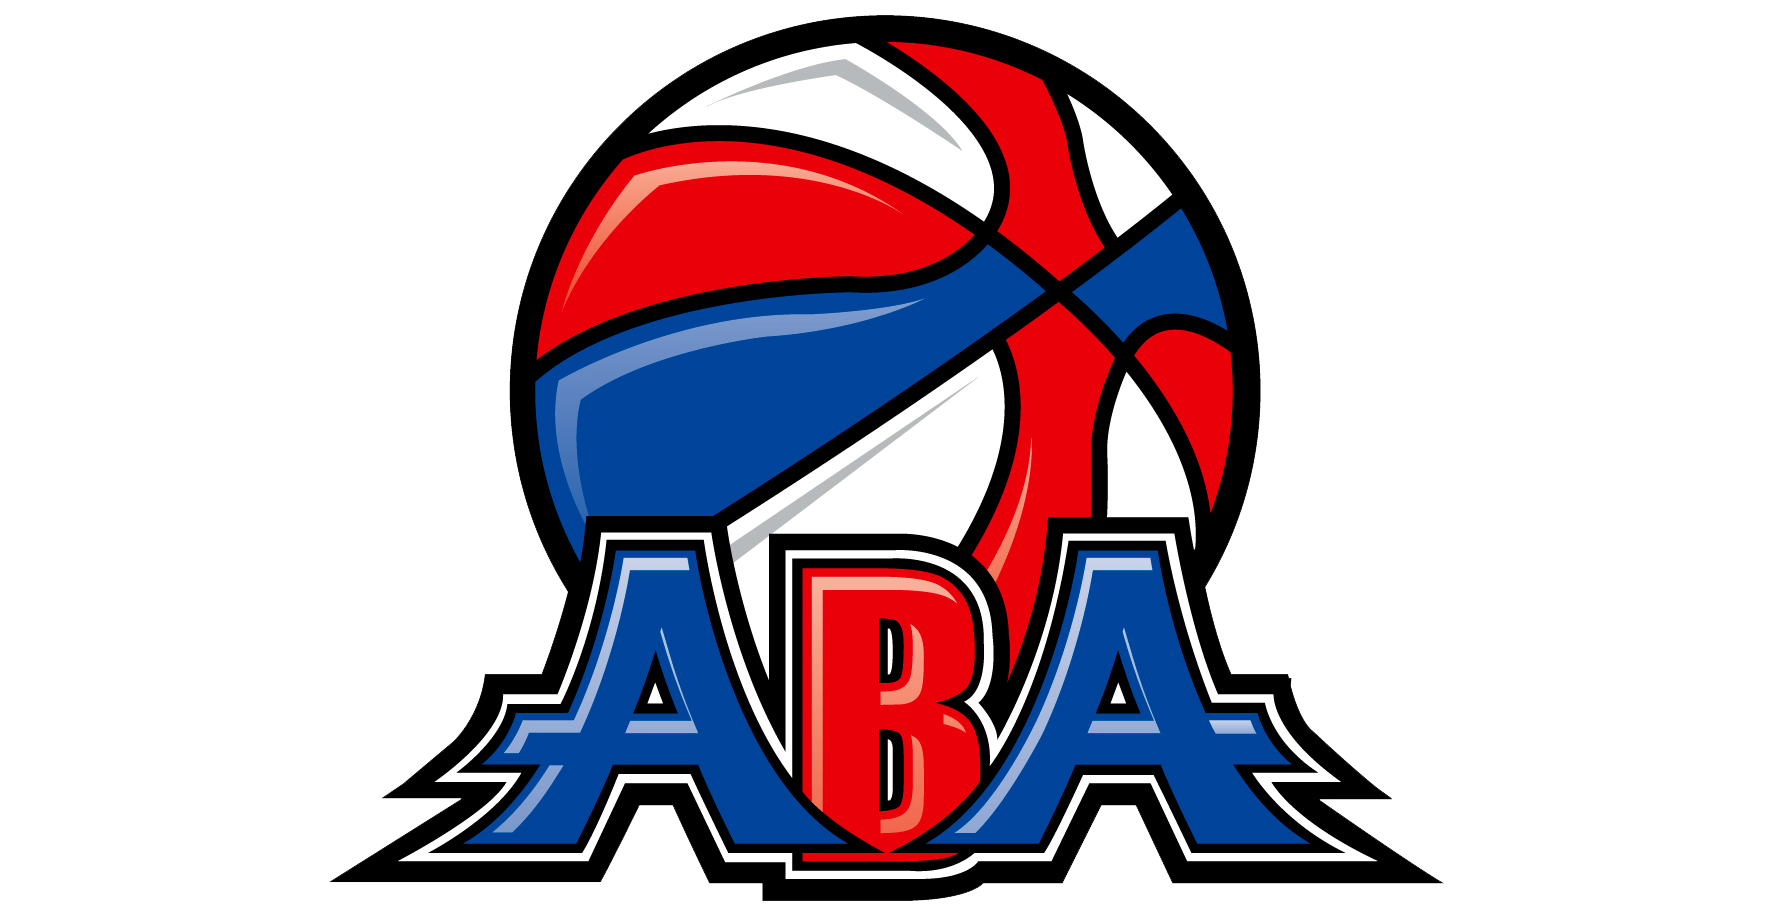 Meaning ABA logo and symbol.